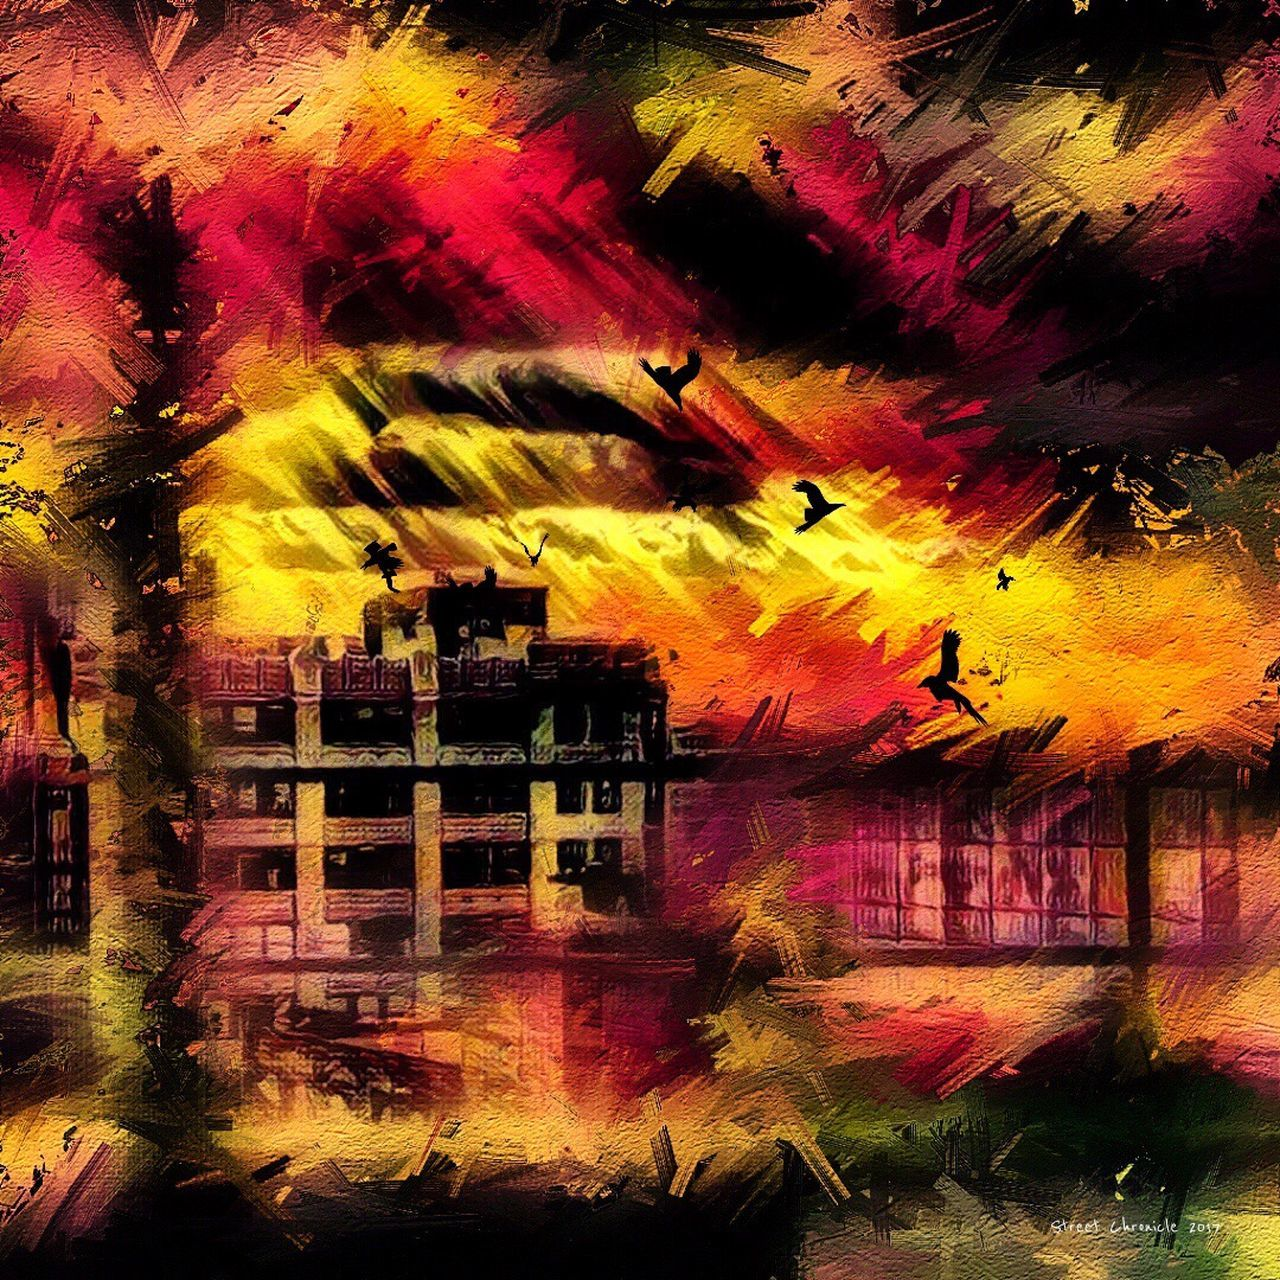 Reflection Multi Colored No People Outdoors NYC Art Artist Fashion Art Gallery Style Arts Culture And Entertainment Art, Drawing, Creativity Artistic Digital Art Building Exterior Digital Composite New York Photooftheday Picoftheday ArtWork Built Structure